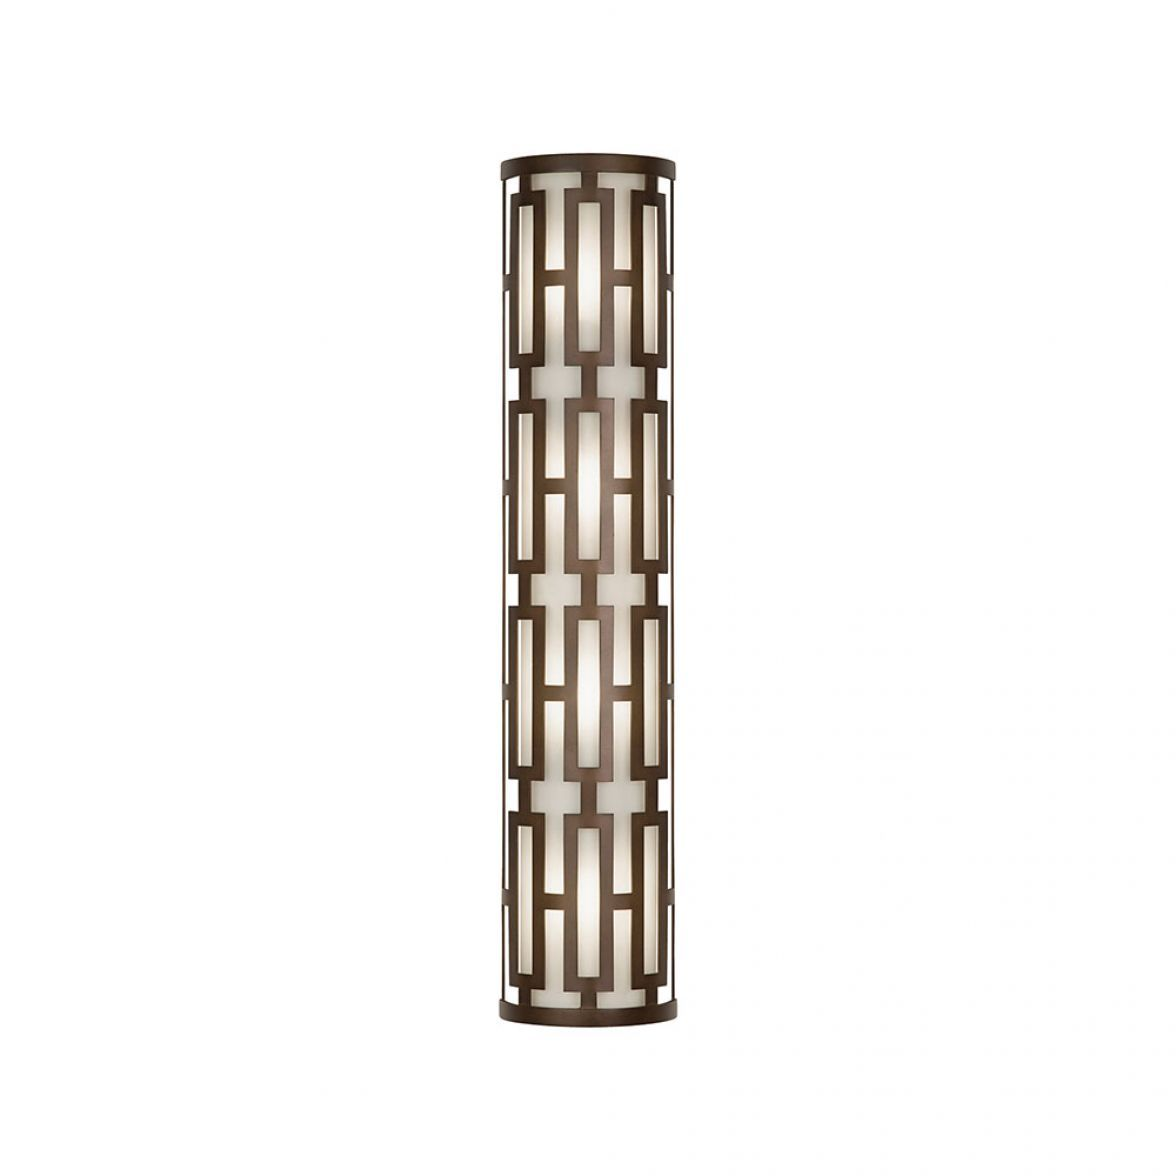 River oaks sconce